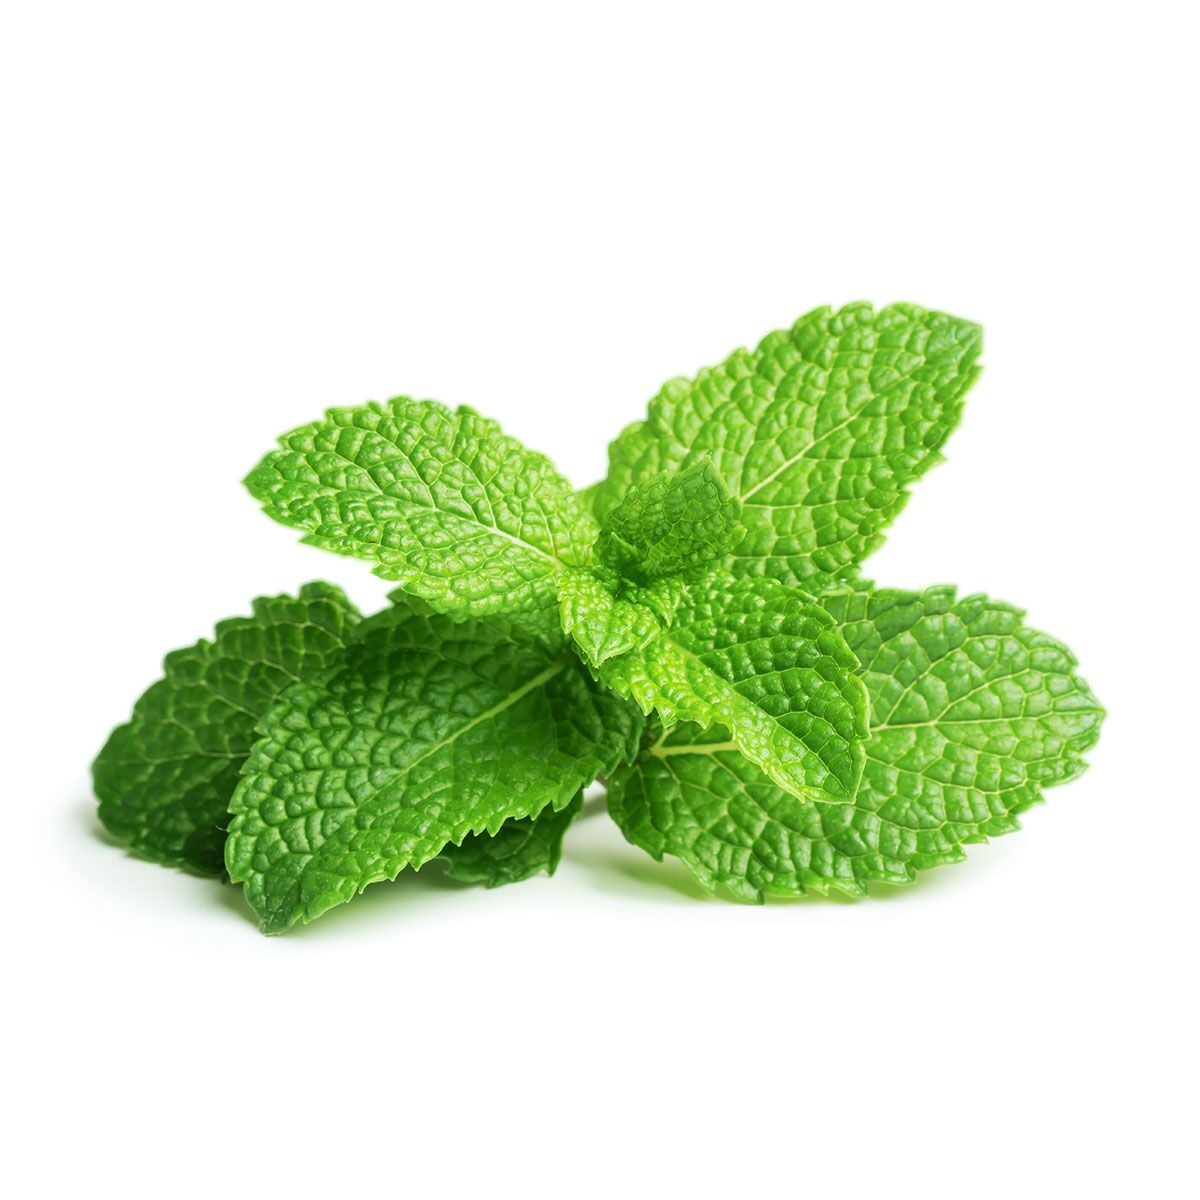 Peppermint_plant_1200x1200_preview.jpg